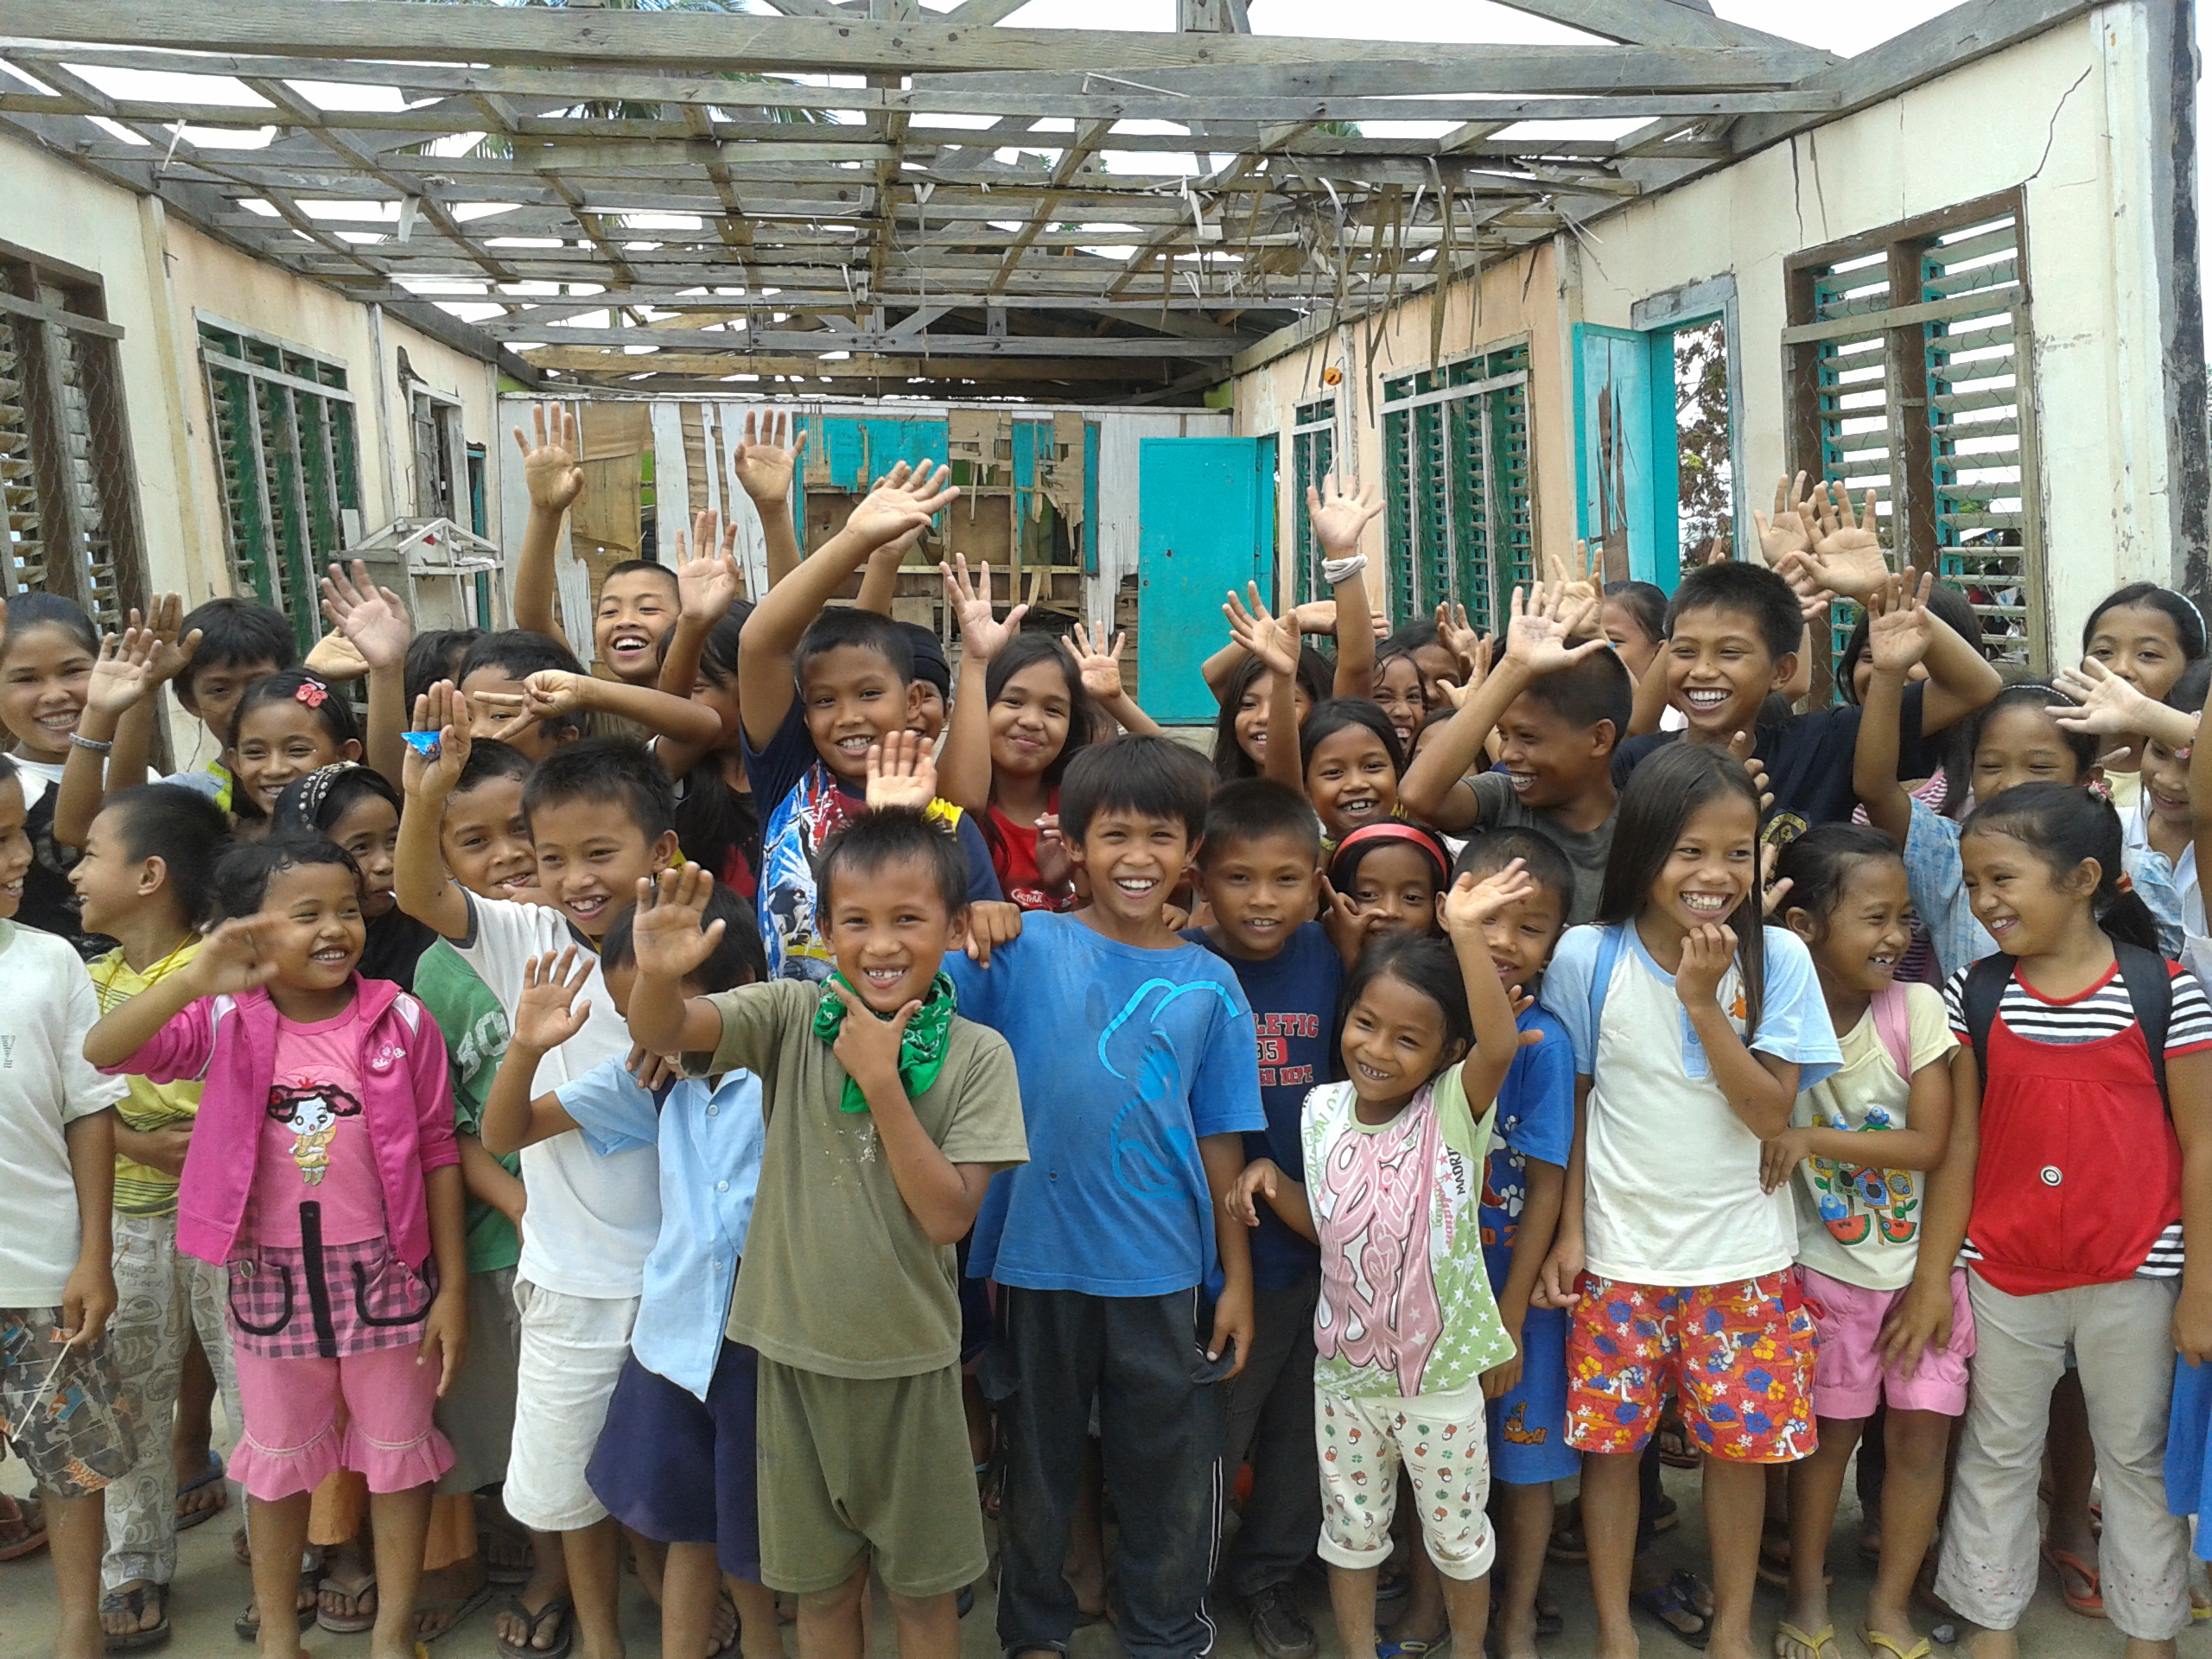 16 Pilipino children from affected area, Philippines 2013